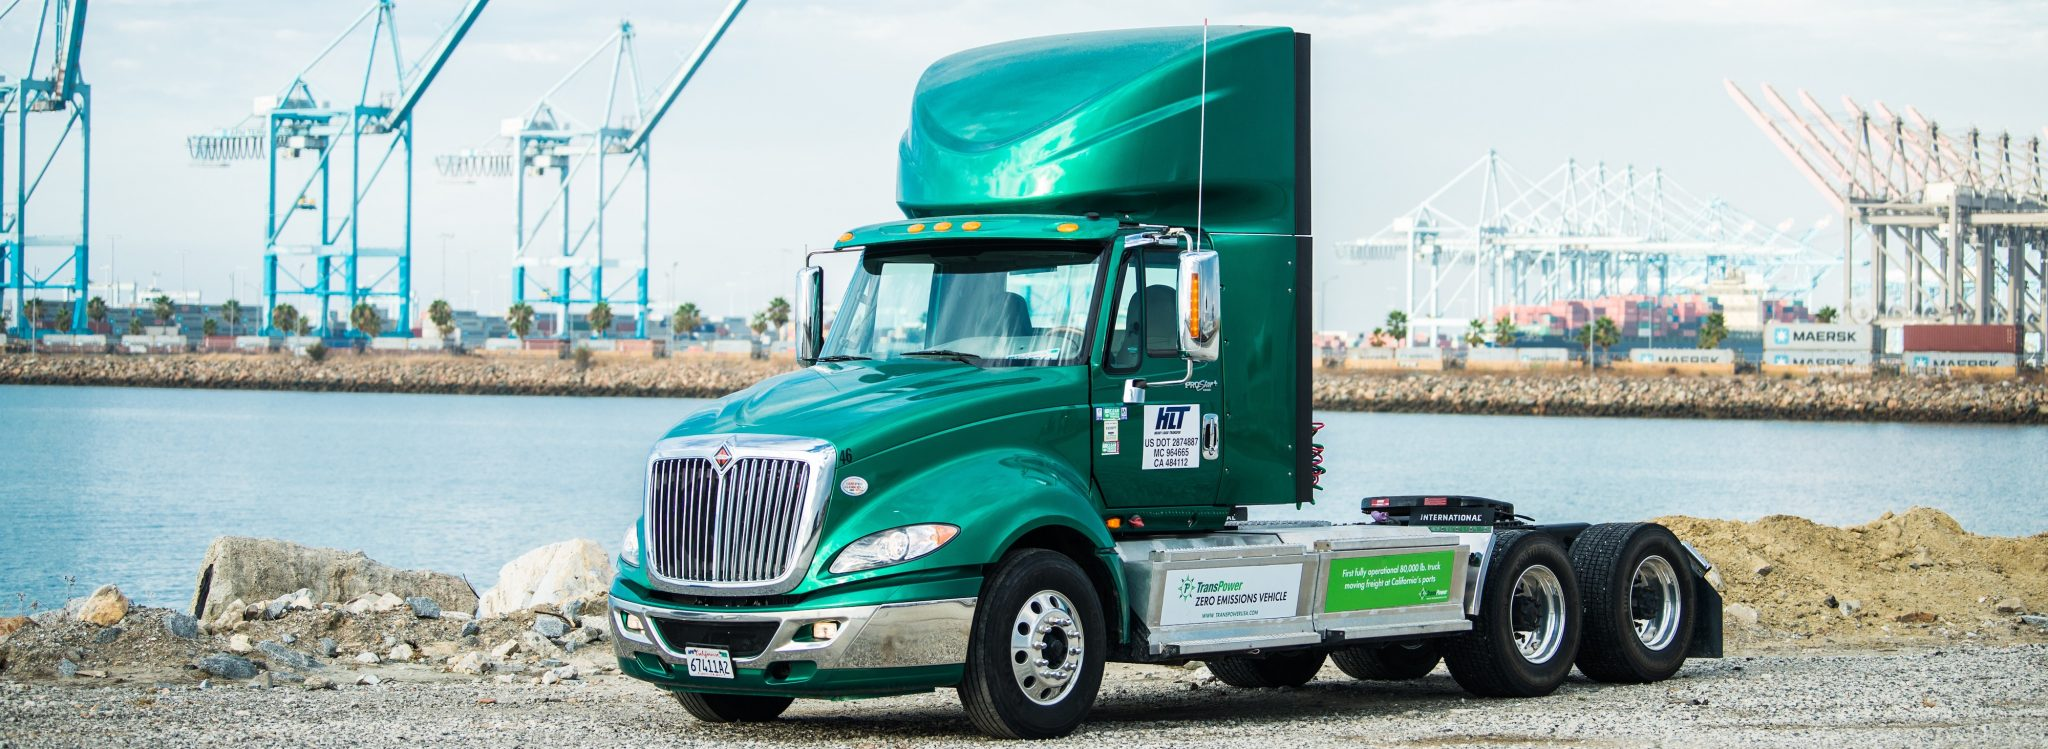 Viable Class 7/8 Electric, Hybrid, and Alternative Fuel Tractors